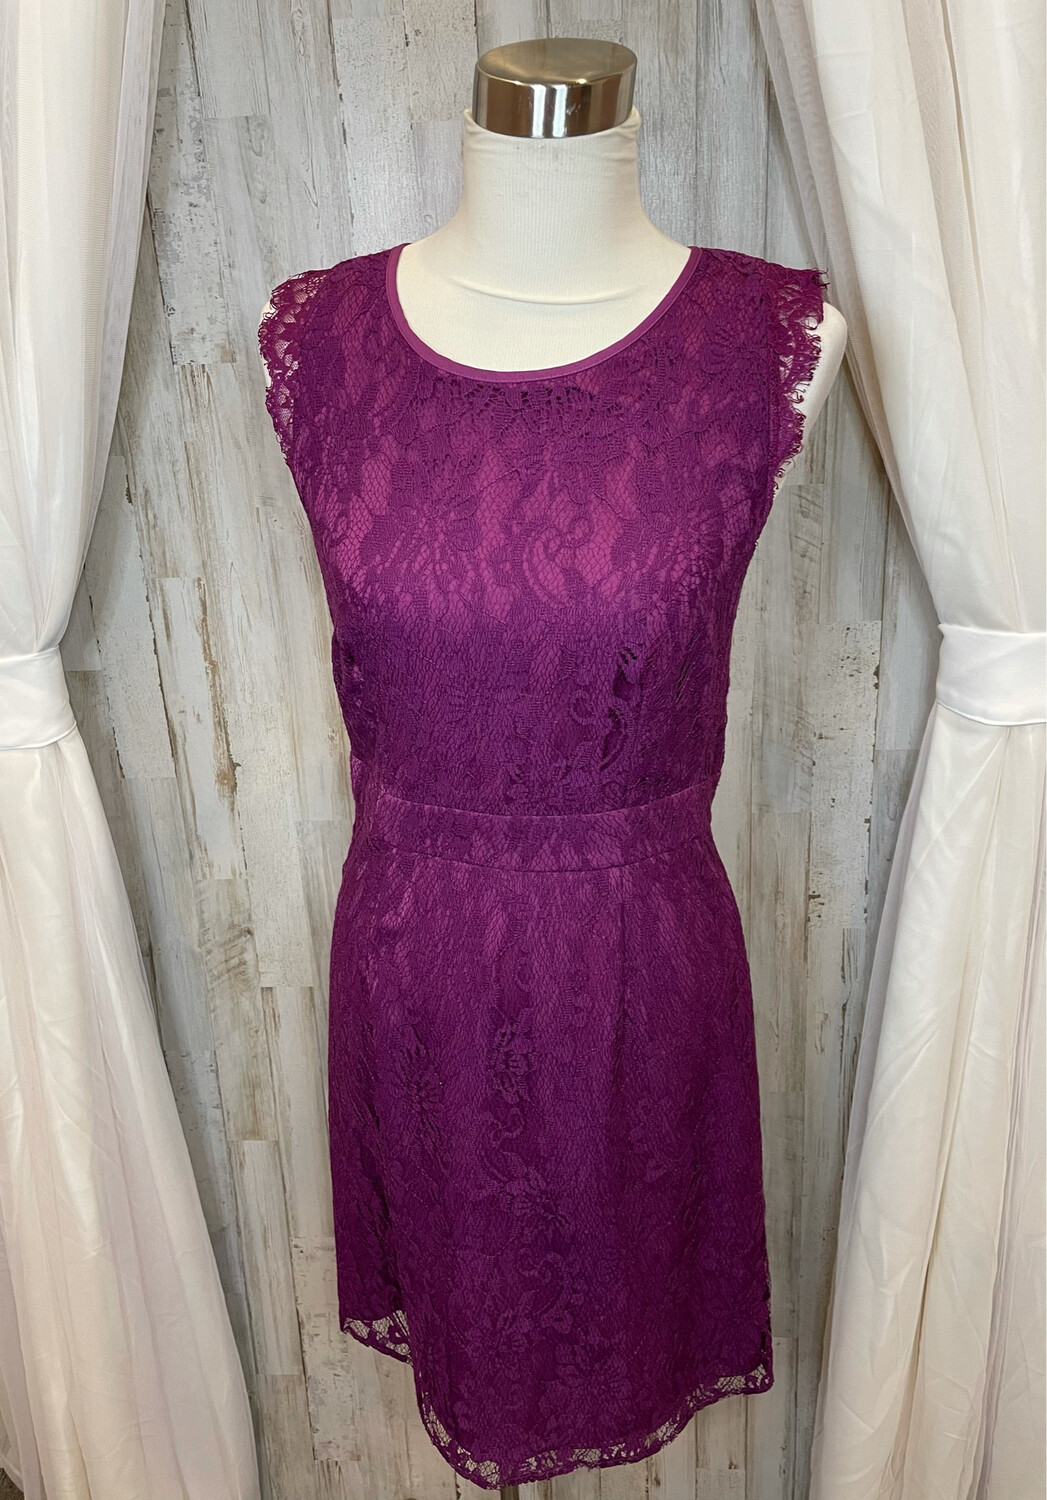 Brixon Ivy Purple Lace Dress - M